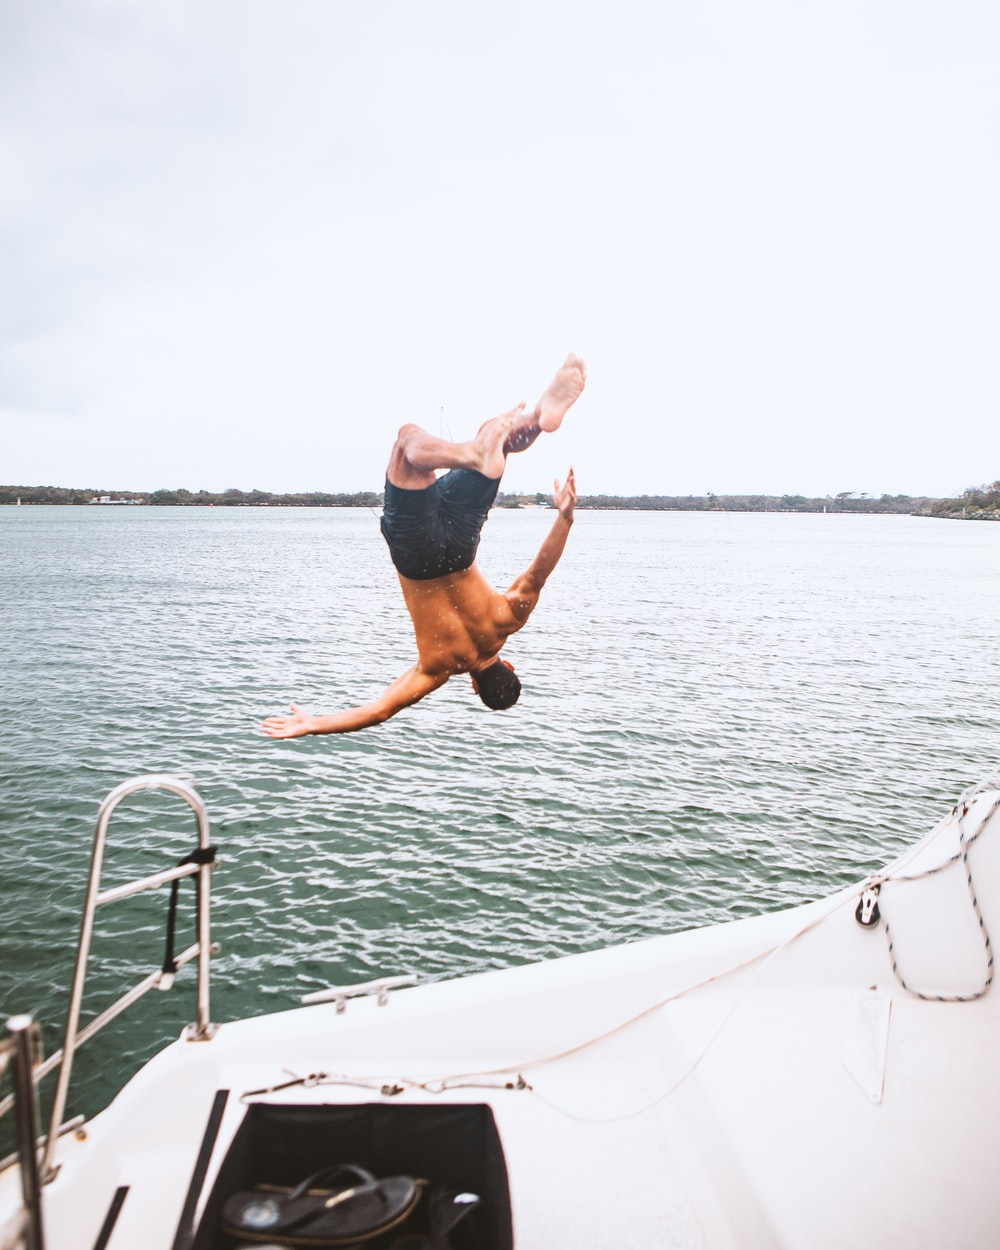 man in black shorts jumping on white boat during daytime